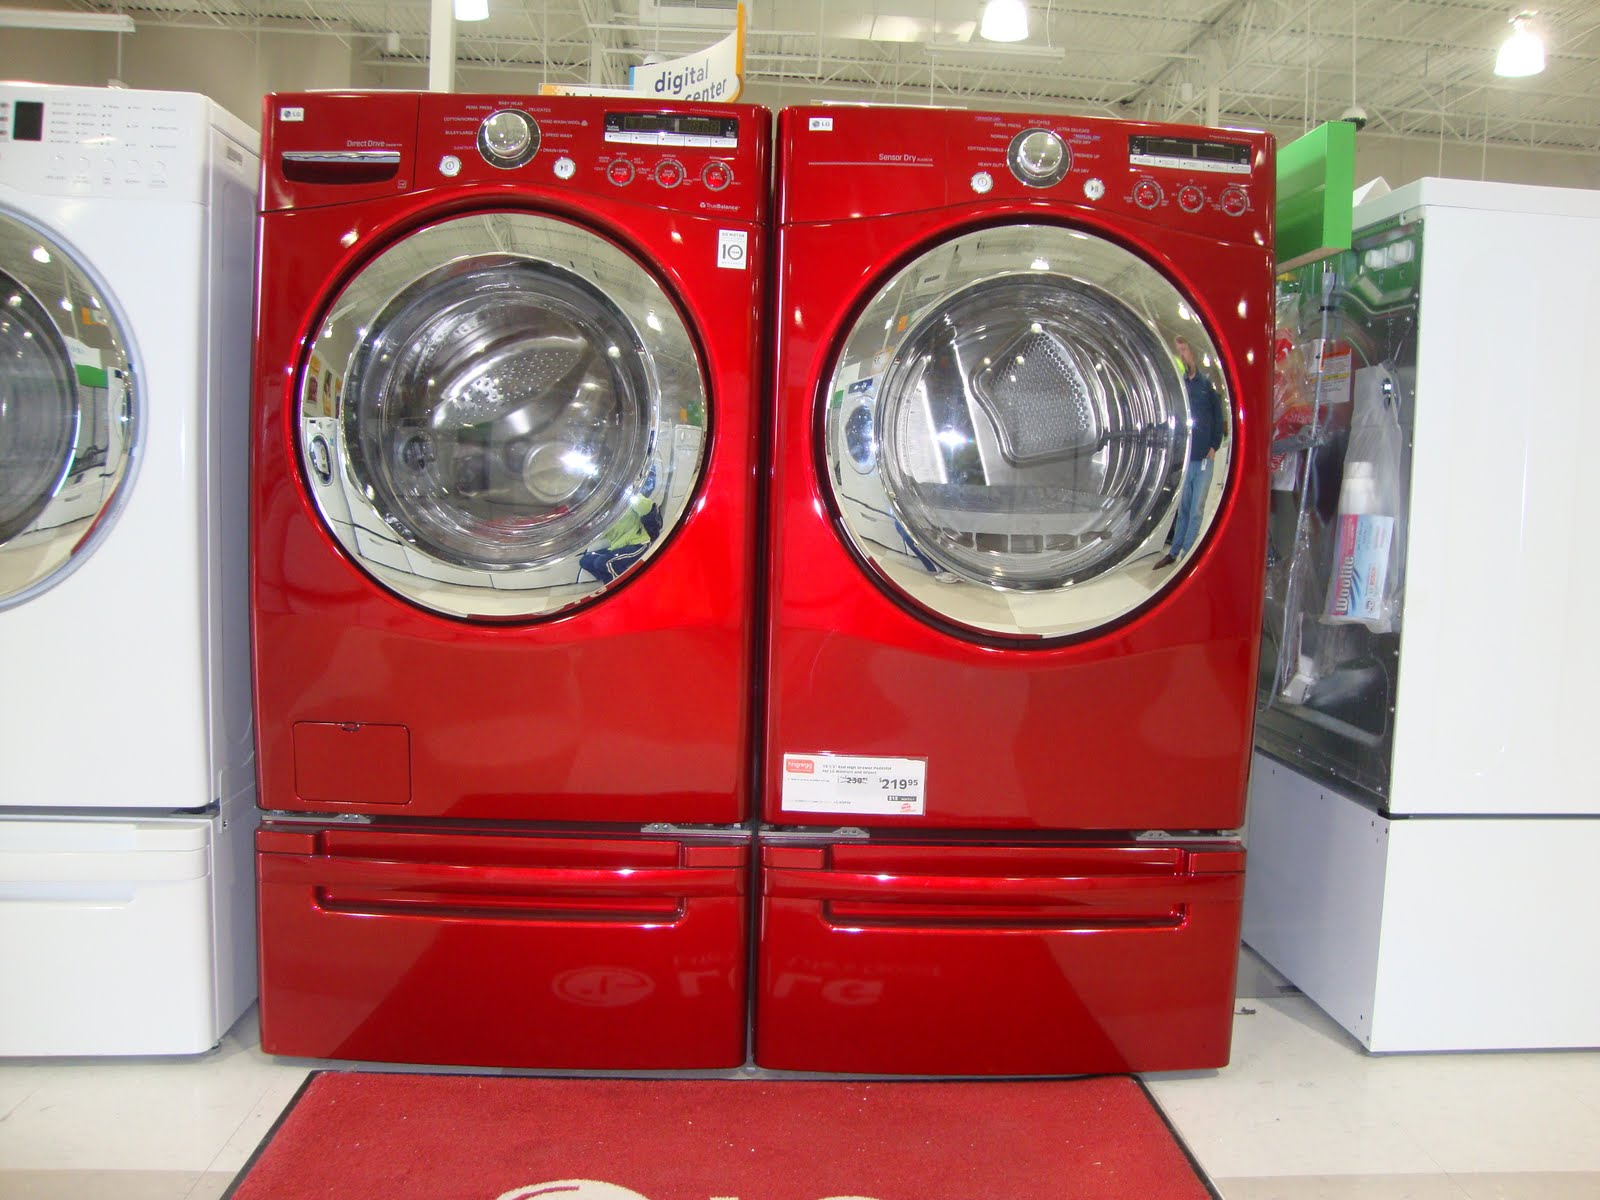 Sears lg washer and dryer - Red Washer Dryer